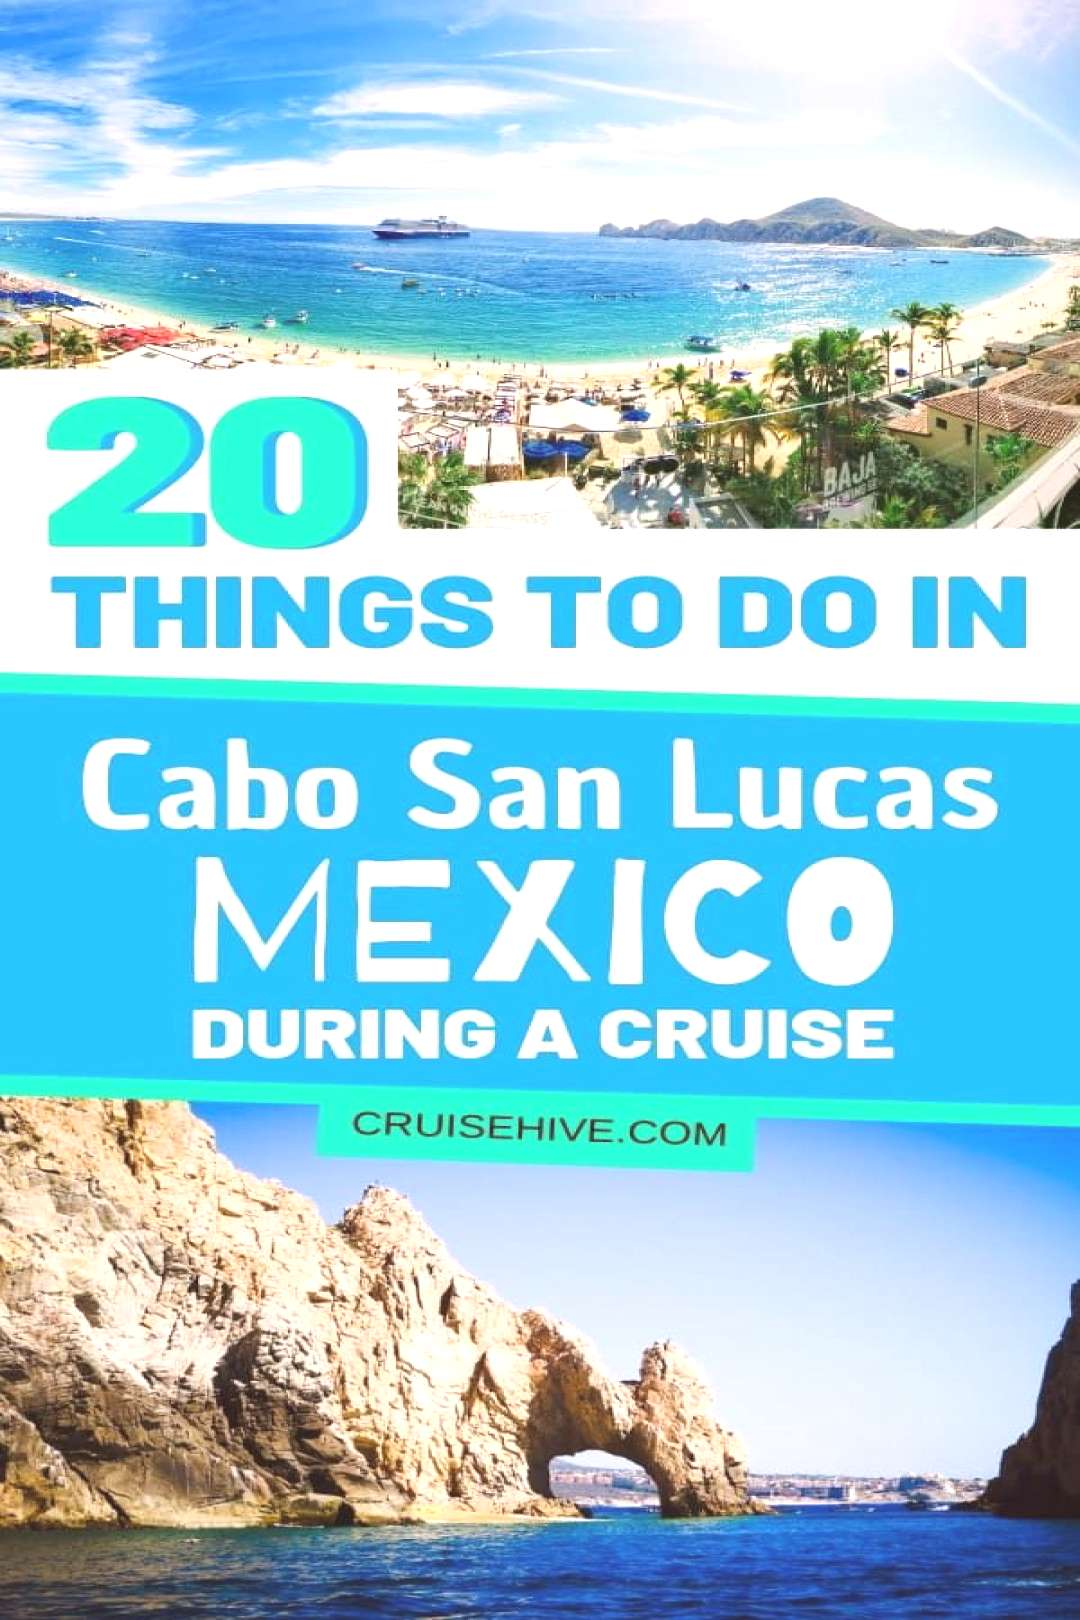 20 Things to Do in Cabo San Lucas, Mexico During a Cruise - Read on for lots of travel and cruise